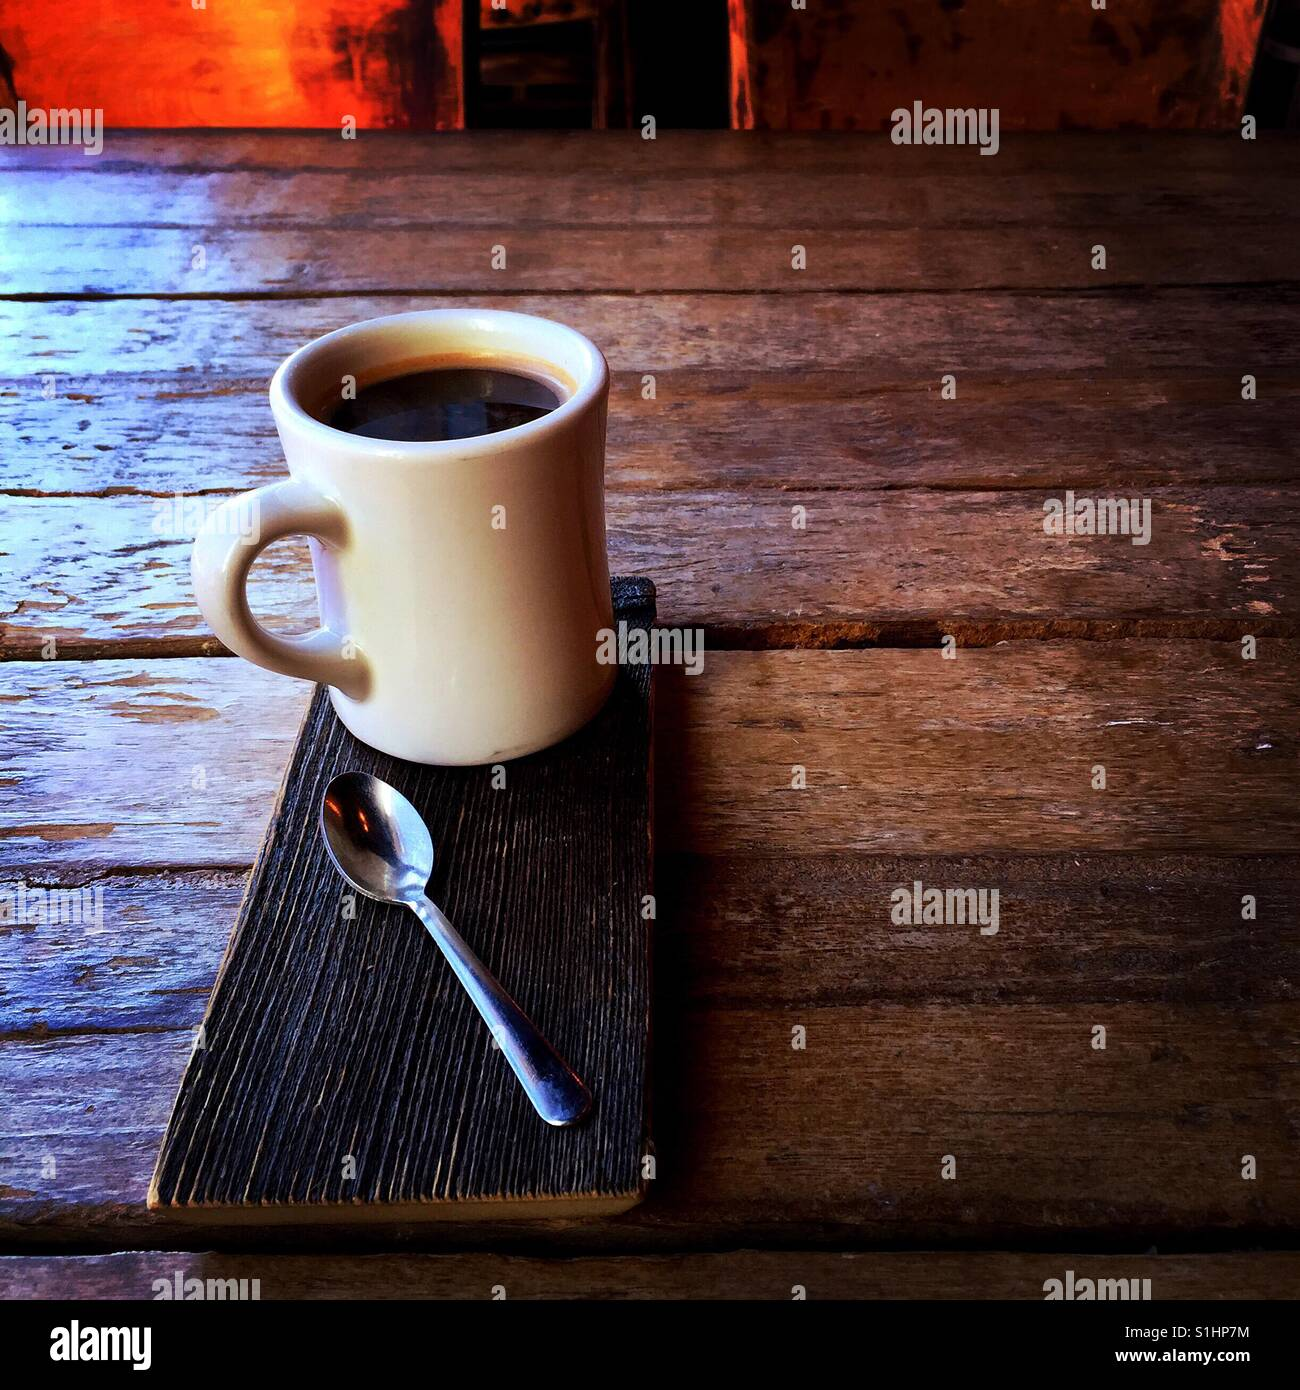 A fresh Americano beverage and a spoon on a wood serving plate on a wooden table - Stock Image